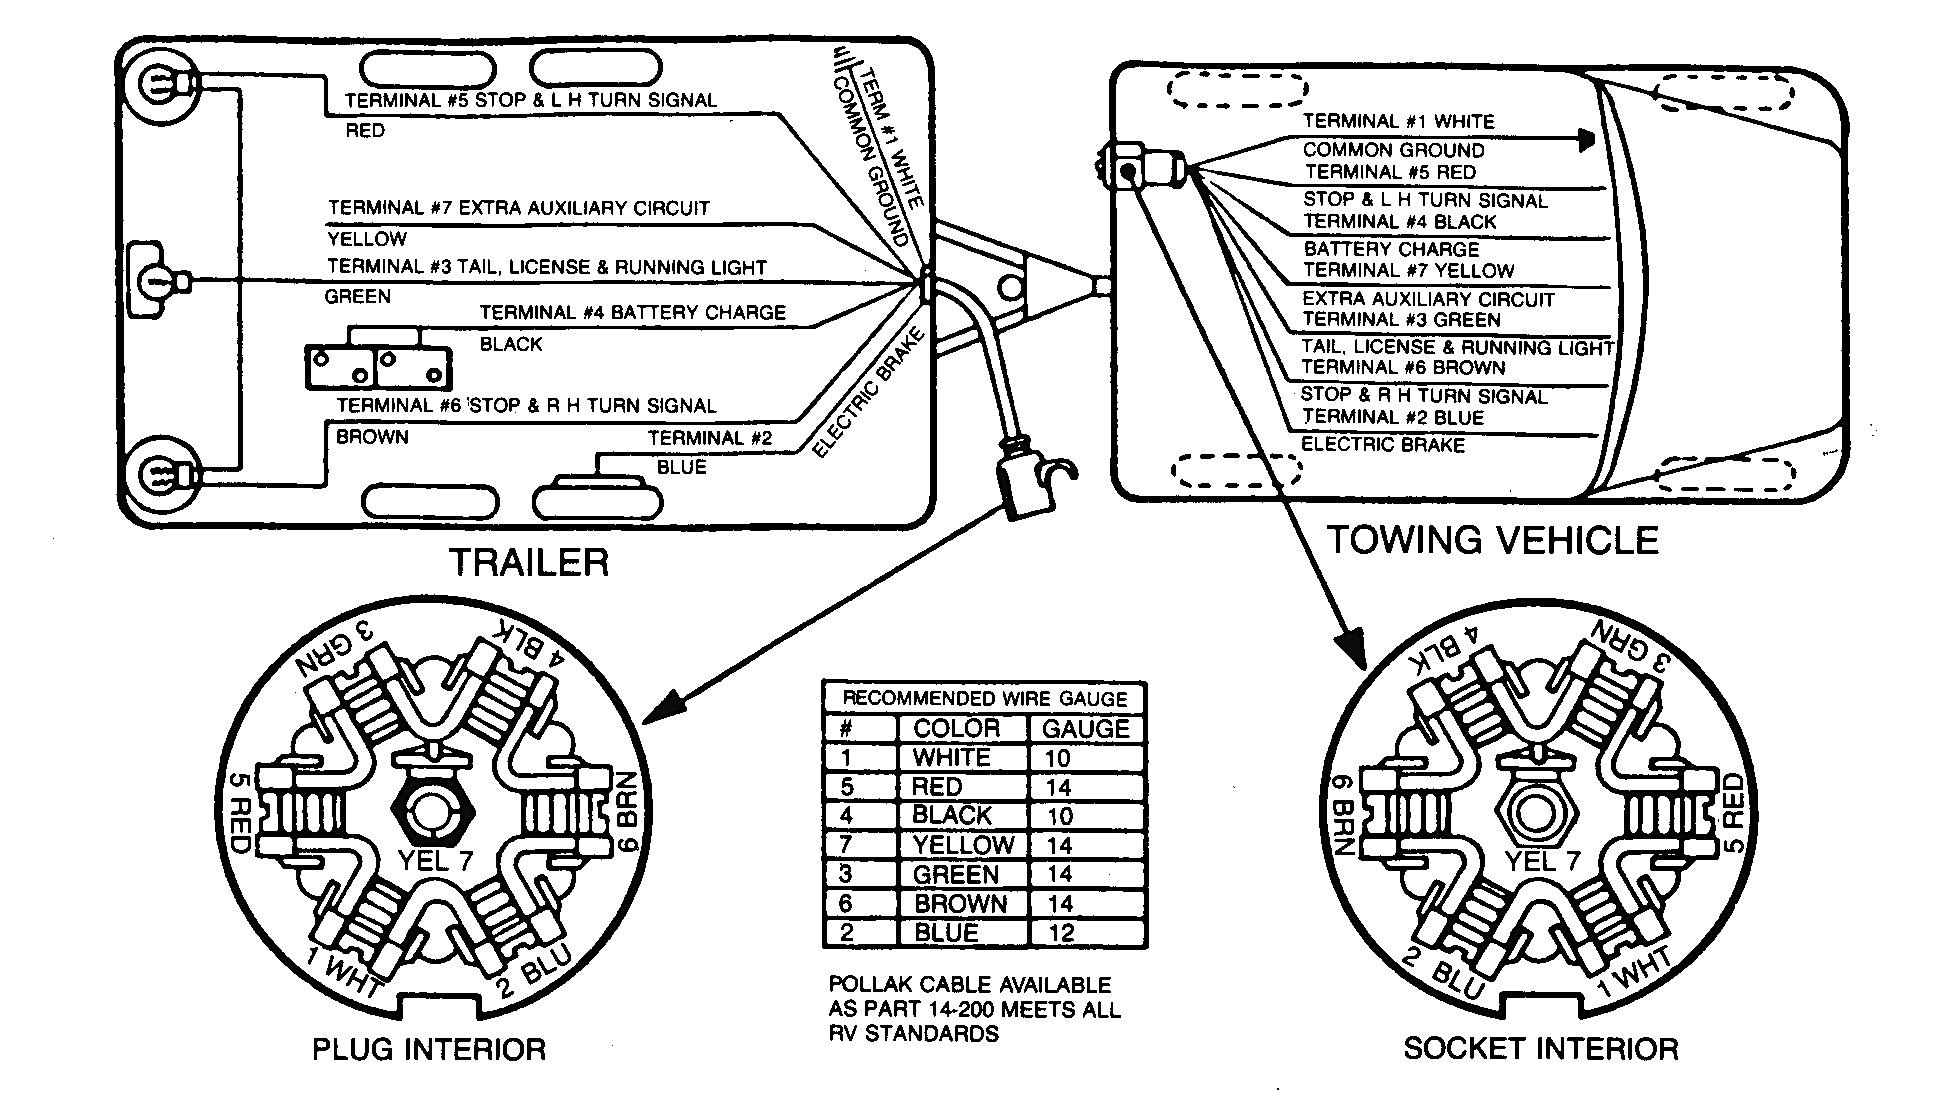 Wiring Diagram For Trailer Breakaway System | Wiring Diagram - Trailer Breakaway System Wiring Diagram